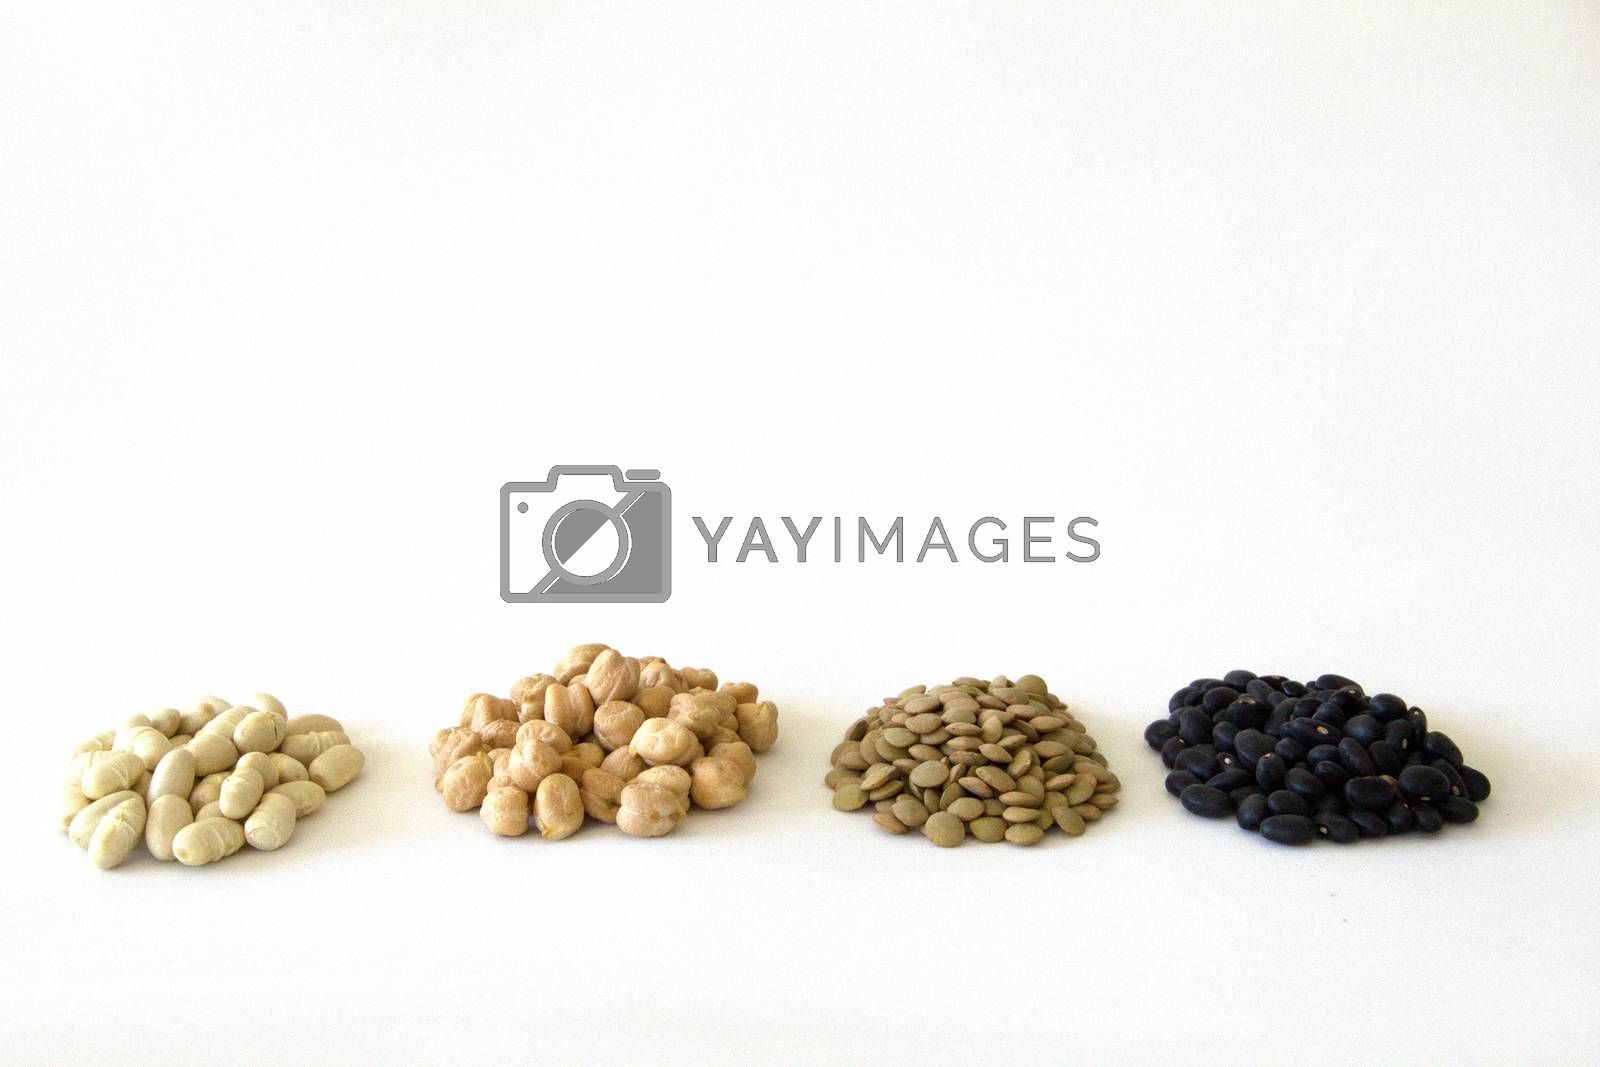 piles of White beans, peas, lentils and black beans with white blackground